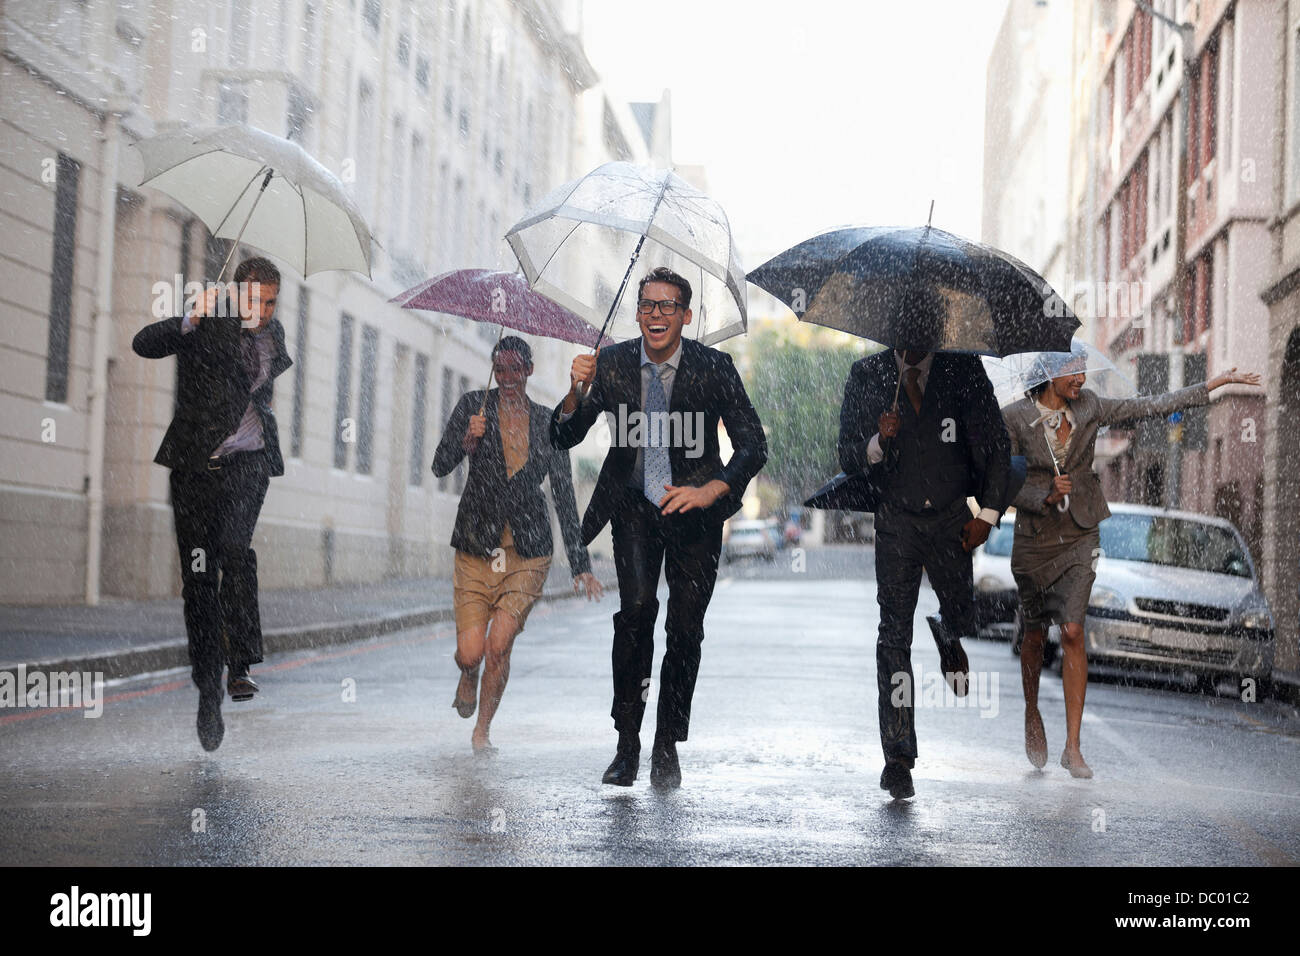 Business people with umbrellas running in rainy street - Stock Image